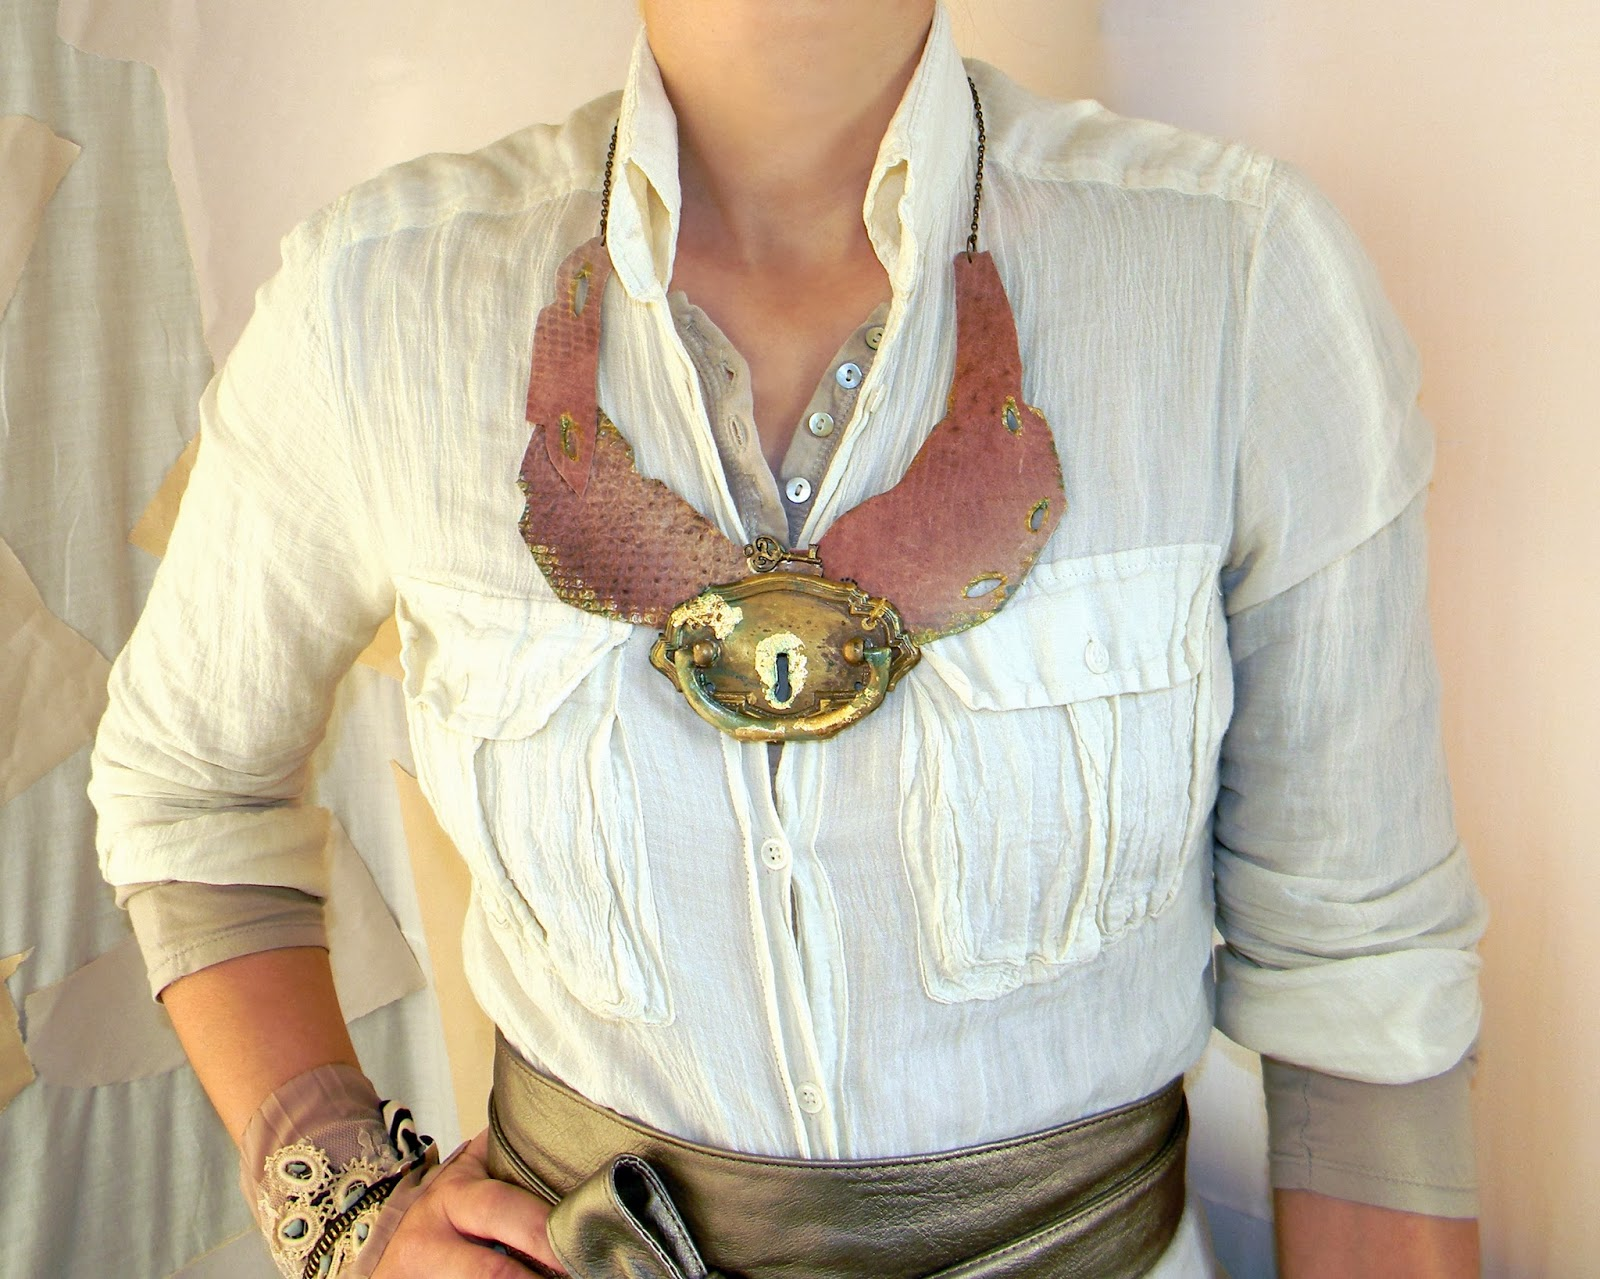 Snake Skin Necklace Leather Collar Vintage Modern Steampunk Twist with Door Knocker Decor